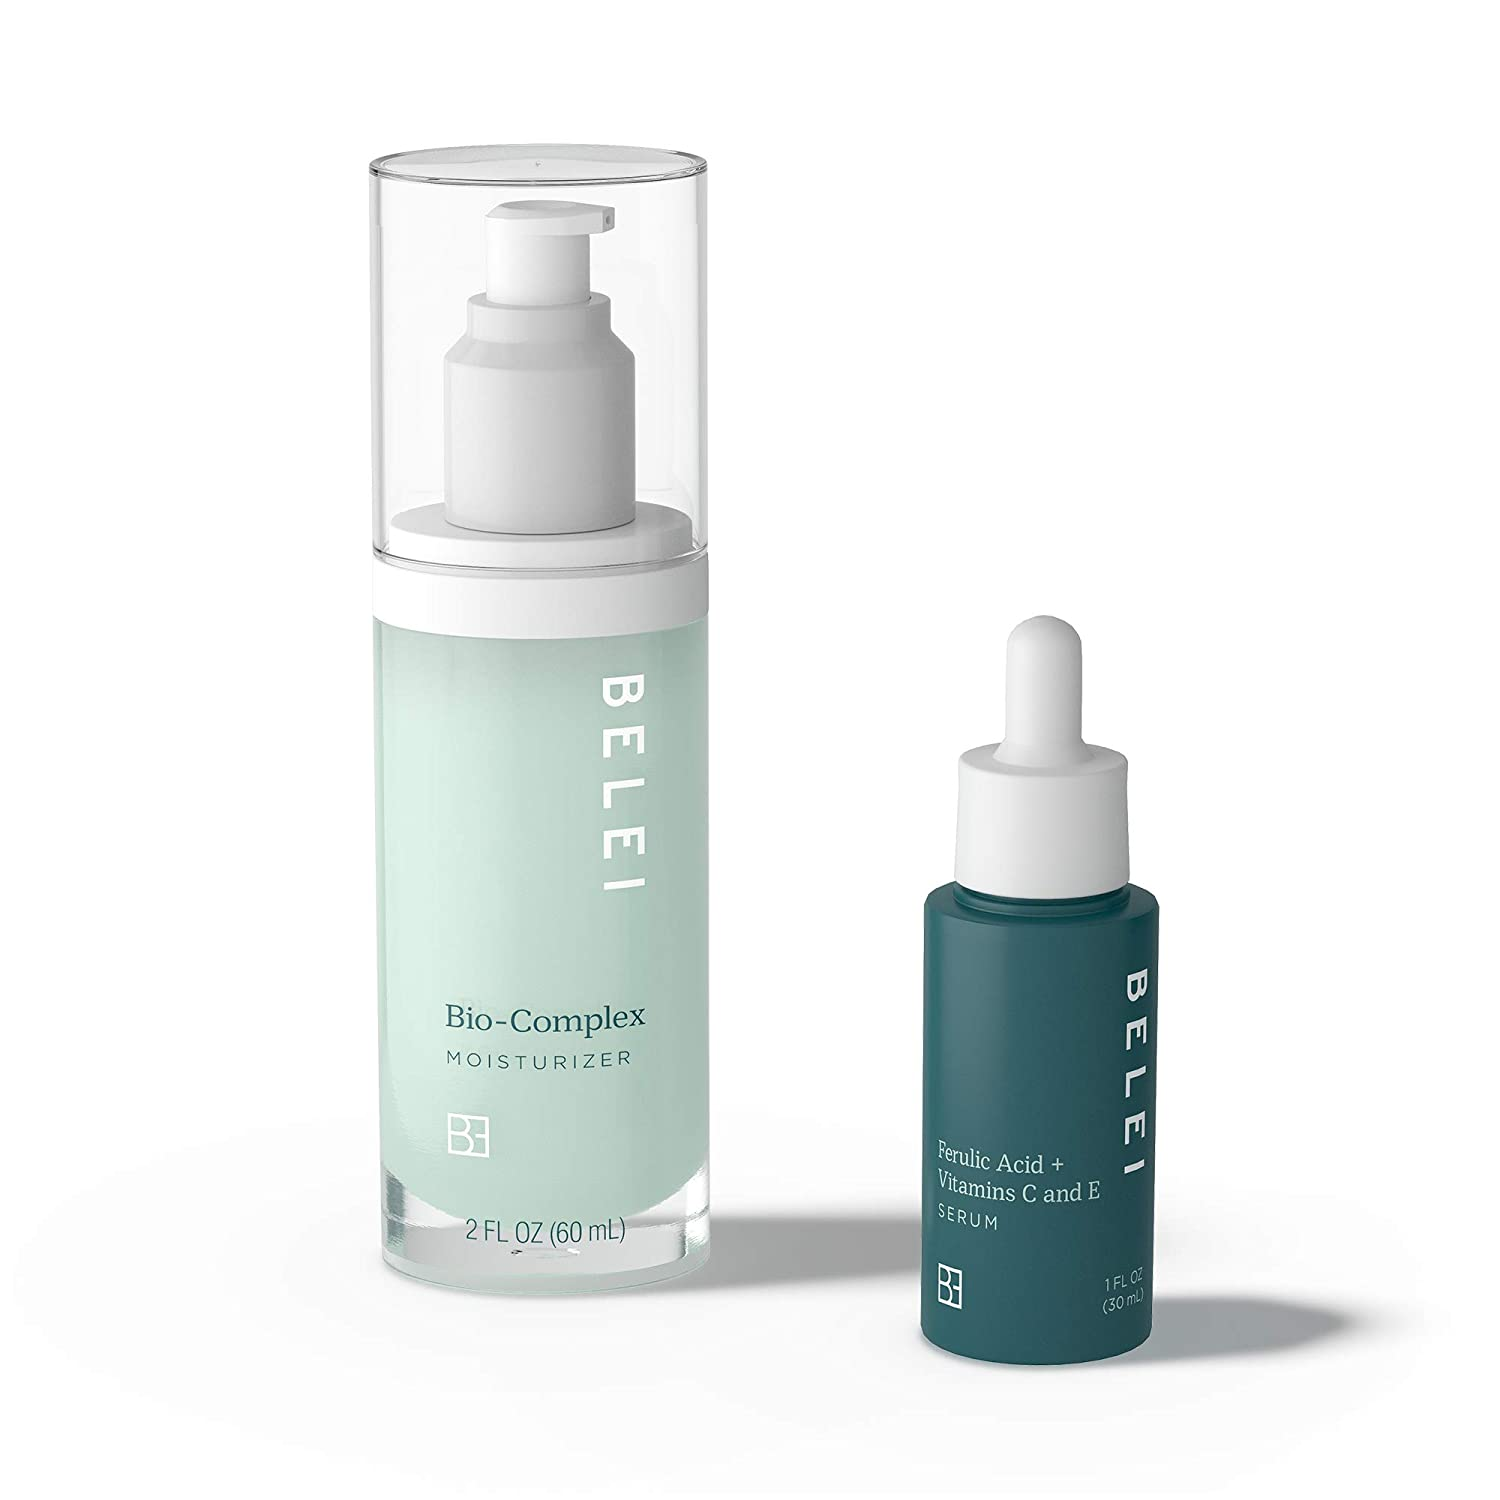 Belei, DAILY HYDRATING DUO, Bio-Complex Moisturizer & Ferulic Acid + Vitamins C and E Serum, Helps with Fine Lines, Hydration, and Uneven Skin Tone (Value at $75)